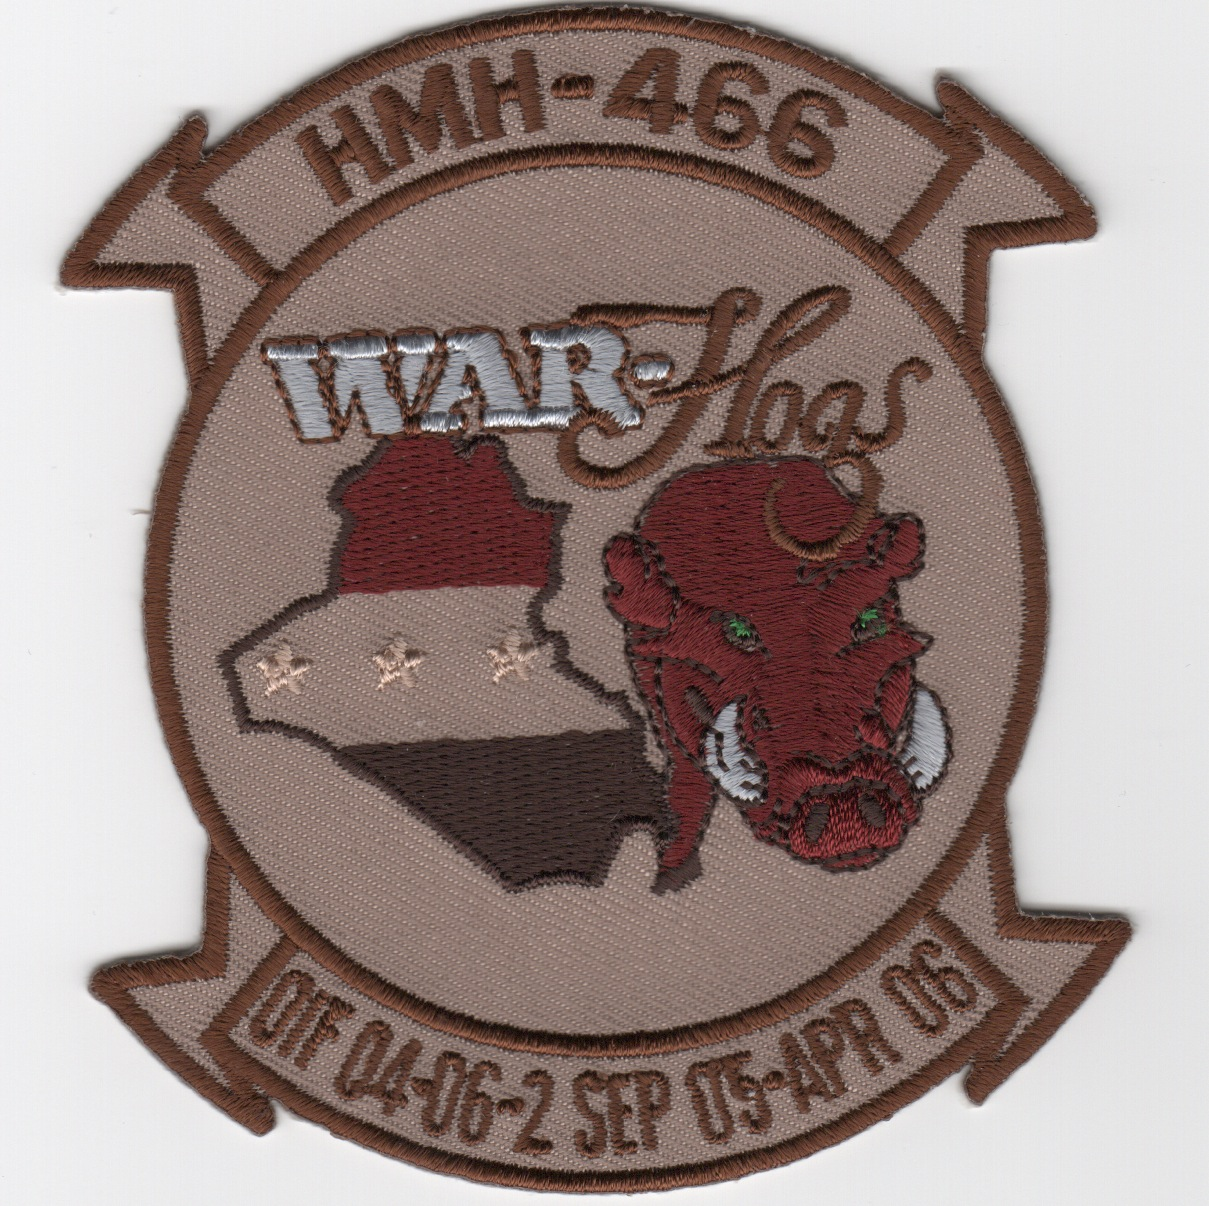 HMH-466 'War Hogs' OIF 04-06 (Des)